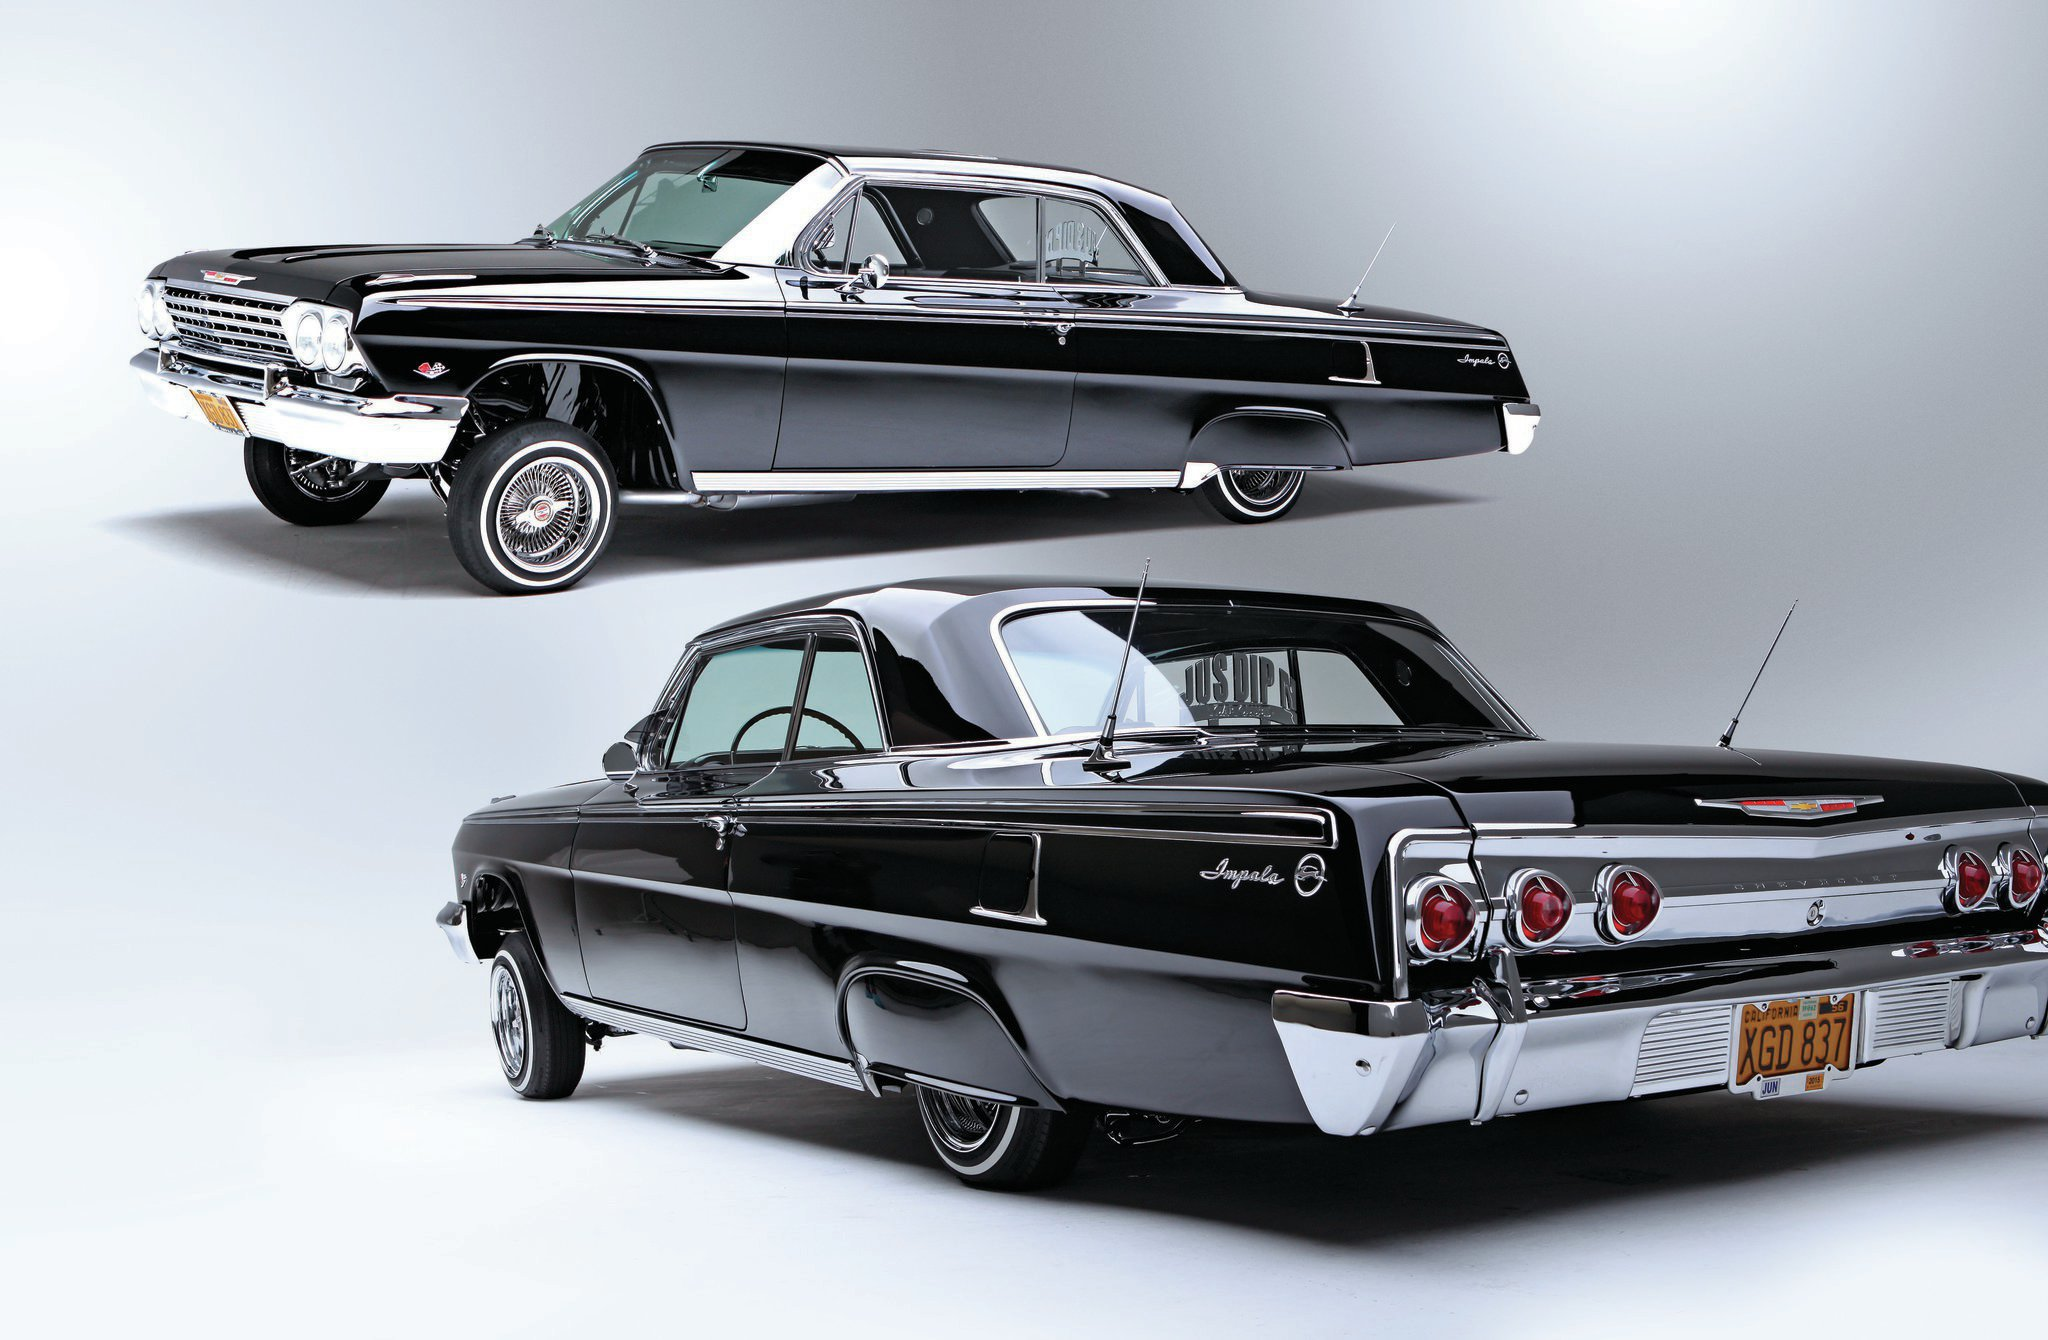 1967 Chevrolet Impala Ss 427 as well 13 2012 Chevrolet Sonic Qs also 1966 Mercury  et further Full Size Chevy Front Fender Crossed Flags Emblem For 327ci And 409ci Best Quality 1964 1967 also 4847354. on used chevrolet impala parts